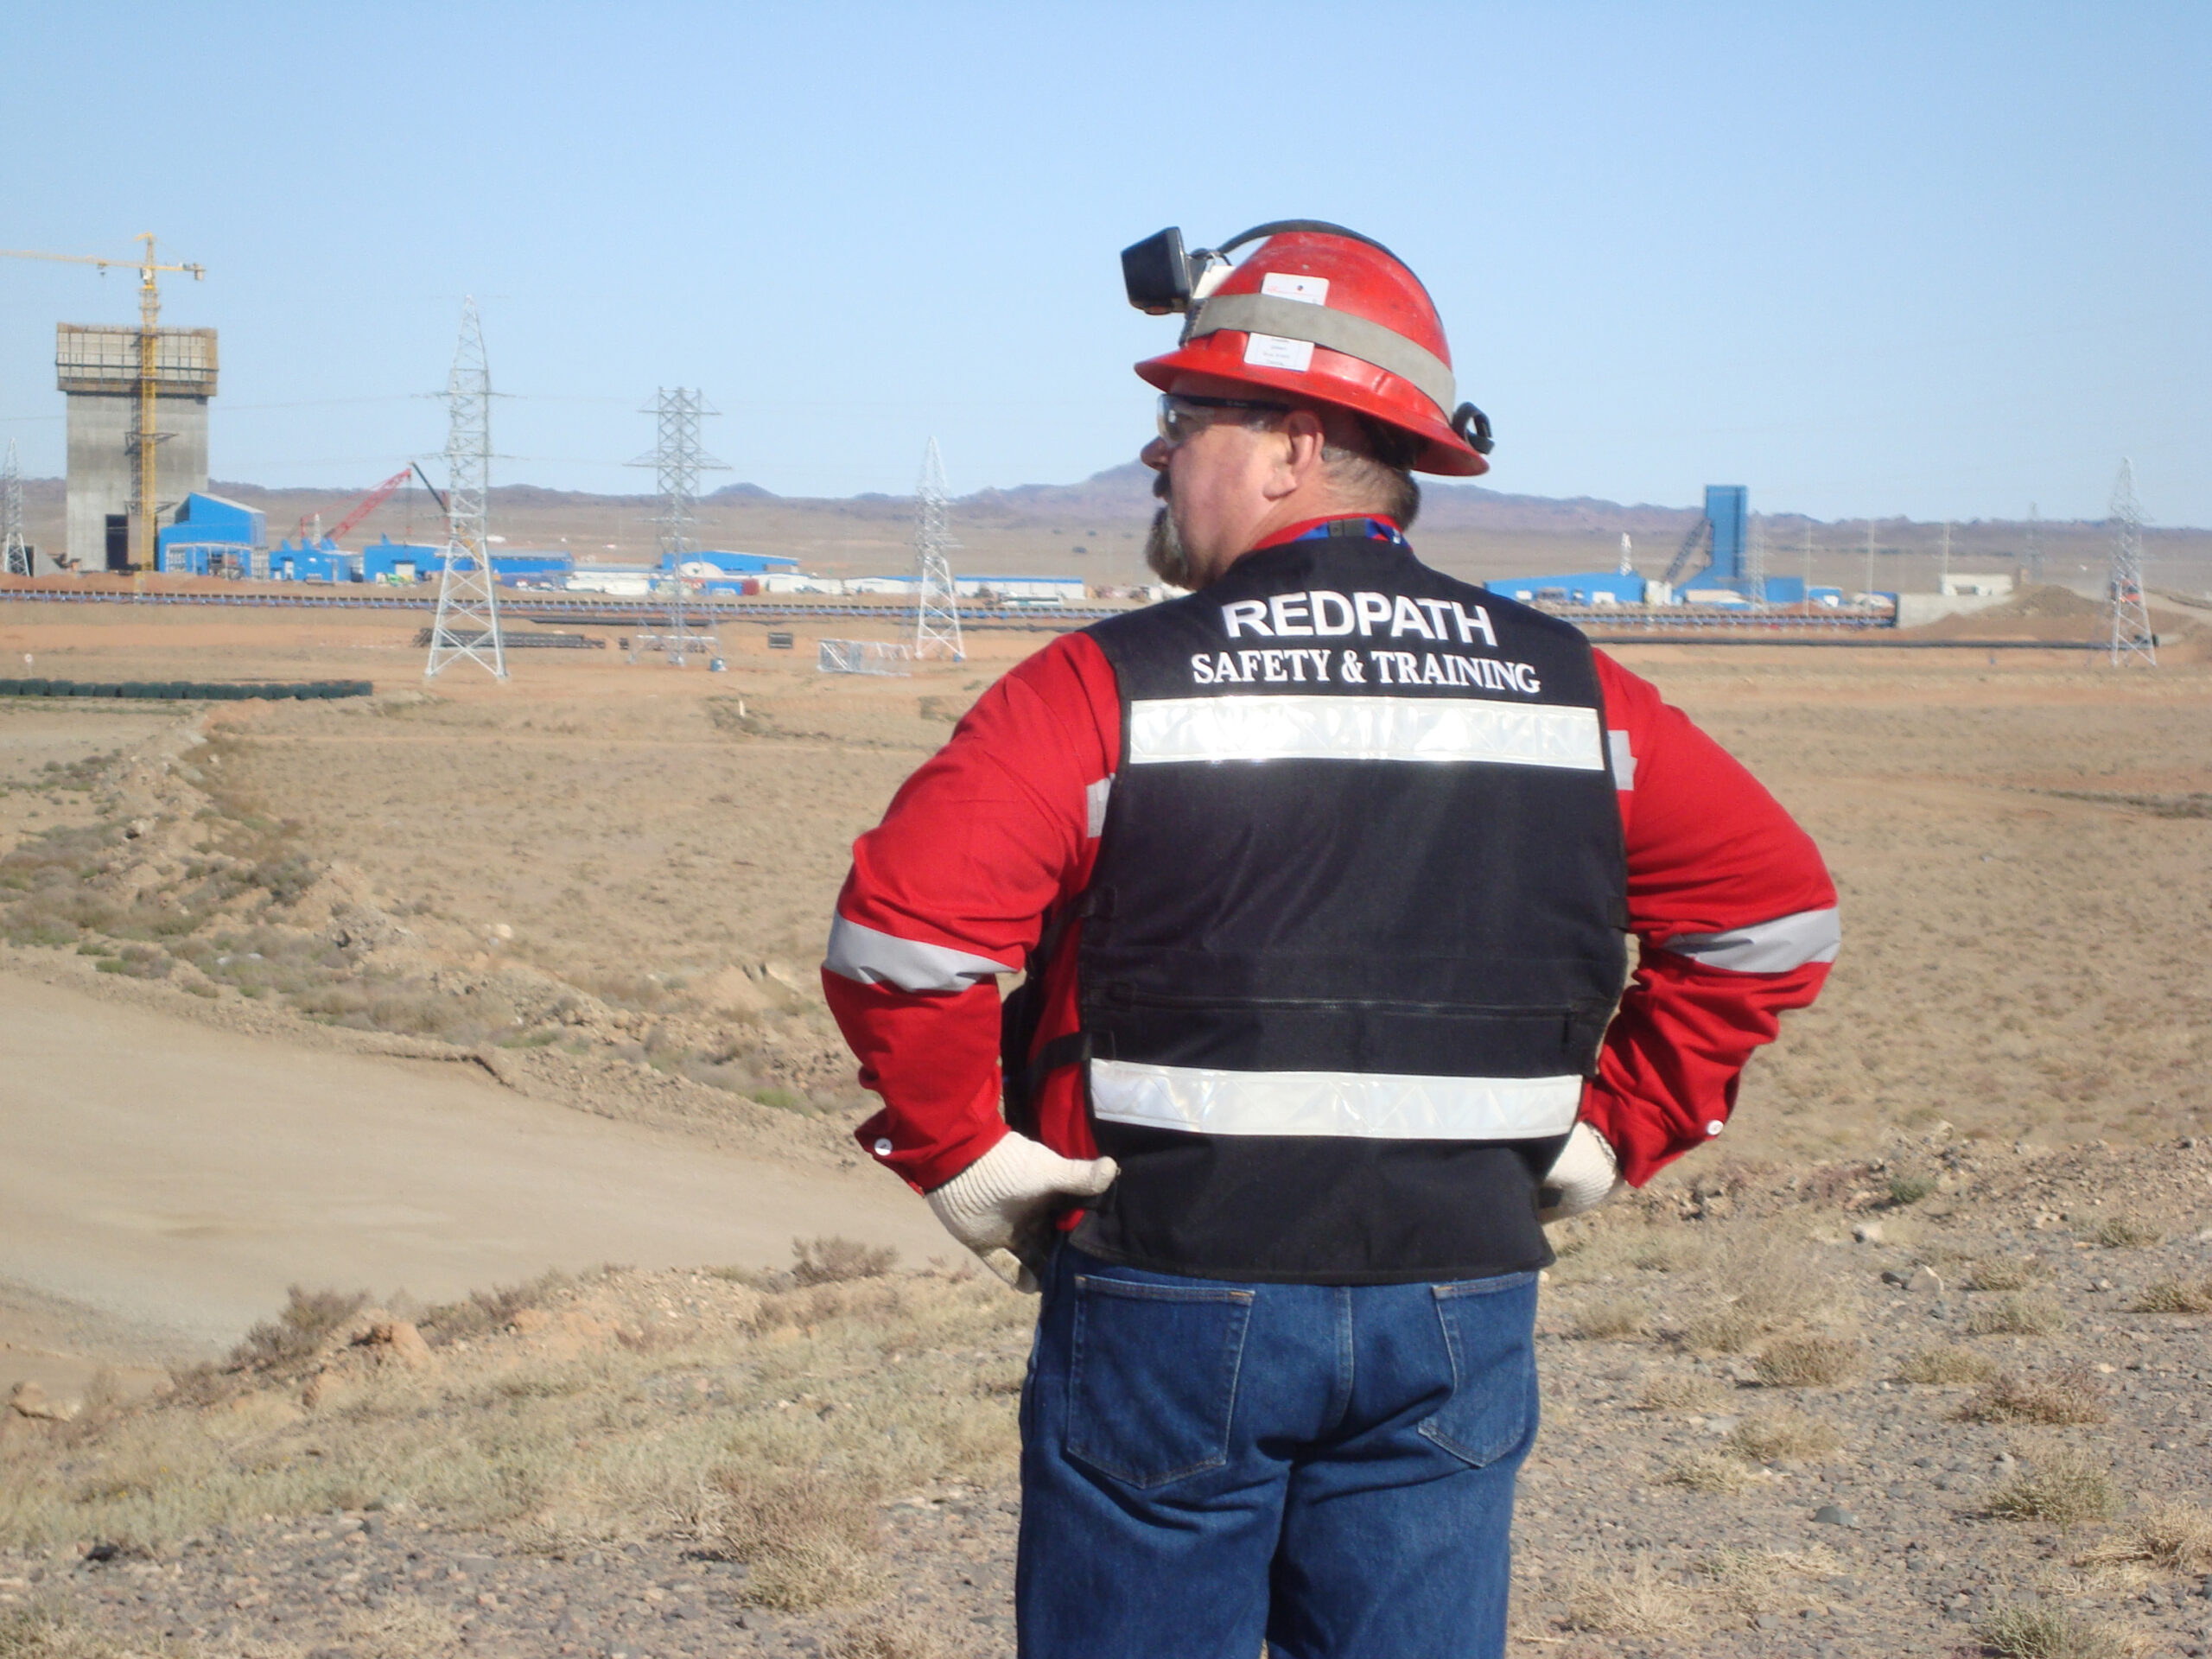 Close-up of a Redpath employee's safety & training jacket from the back.